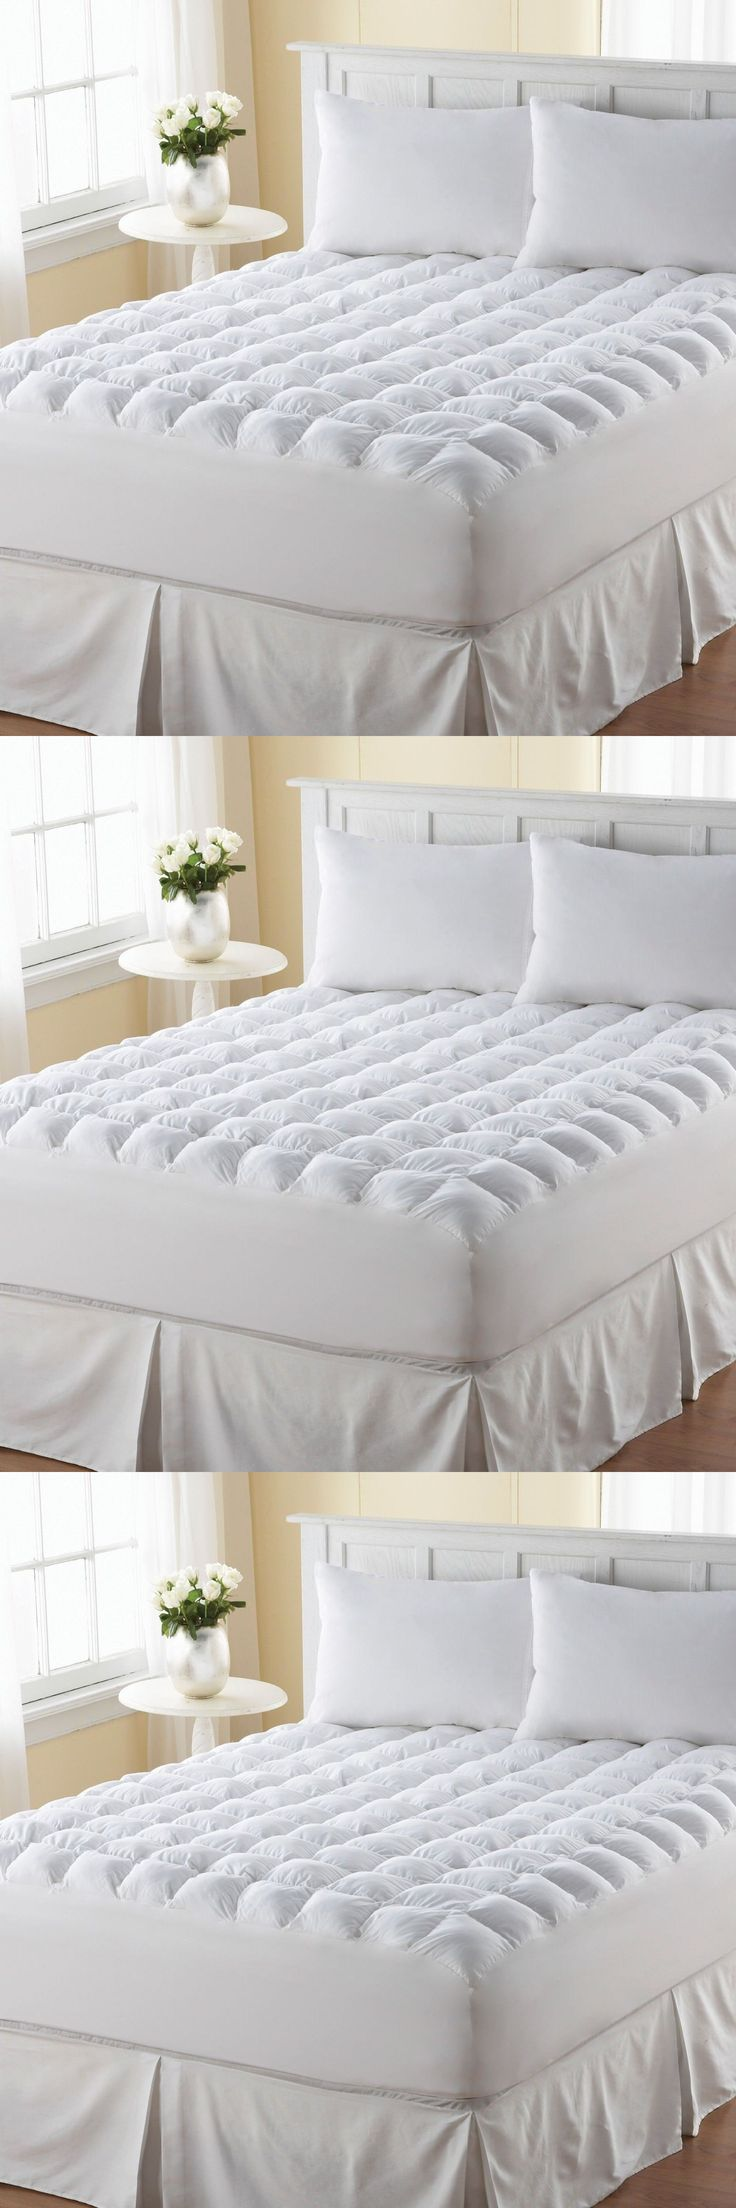 Mattress Pads and Feather Beds 175751: Pillow Top Mattress Topper King Size  Pad Cover Protector